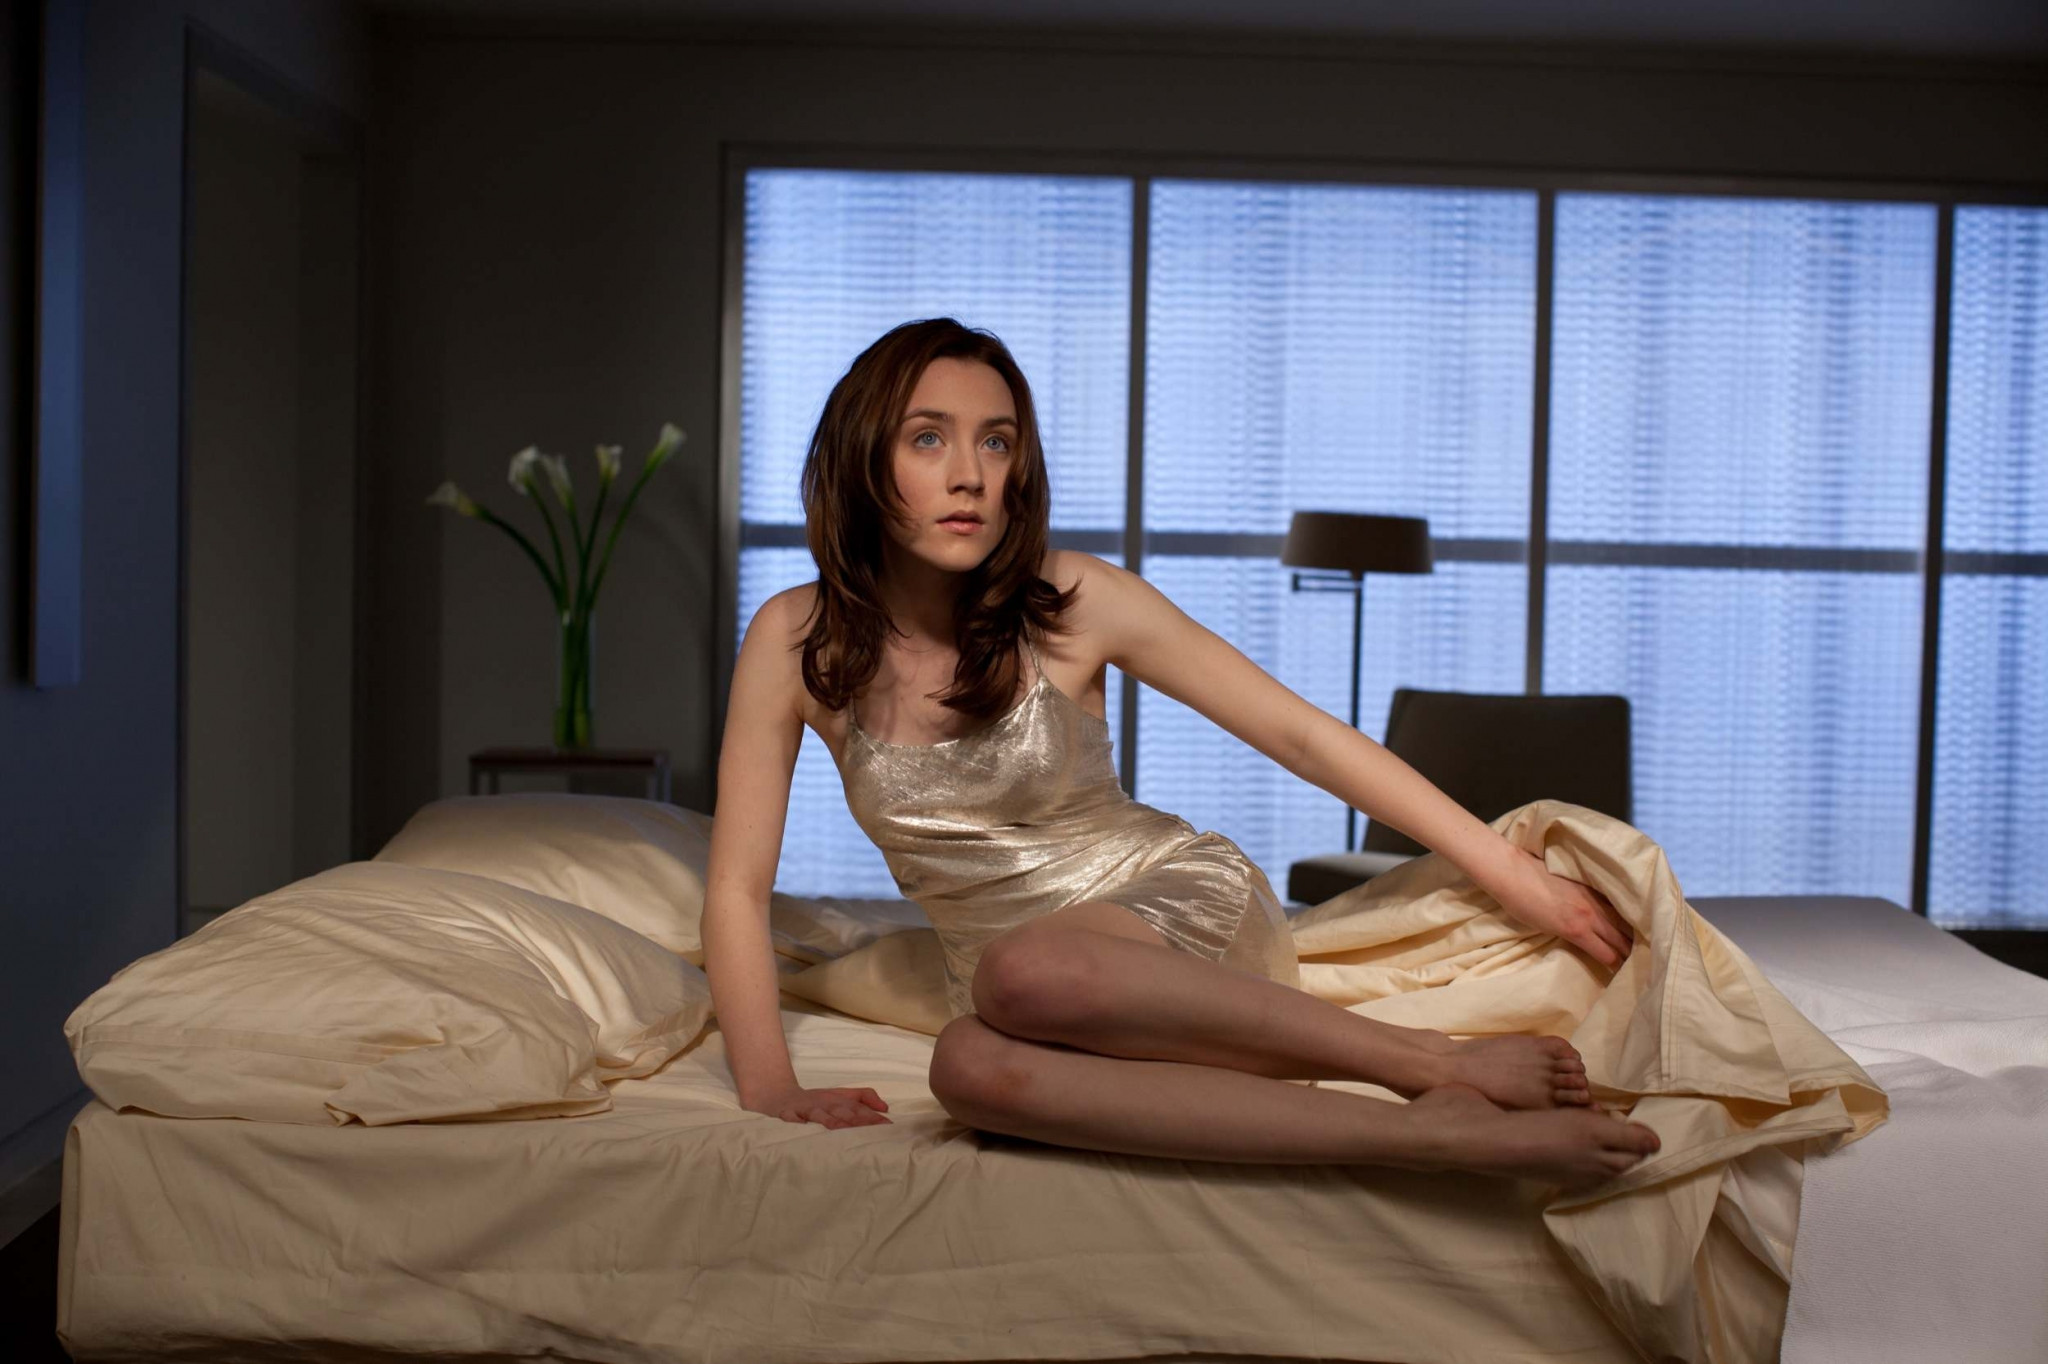 Saoirse Ronan in bed - Saoirse Ronan Net Worth, Movies, Family, Boyfriend, Pictures and Wallpapers